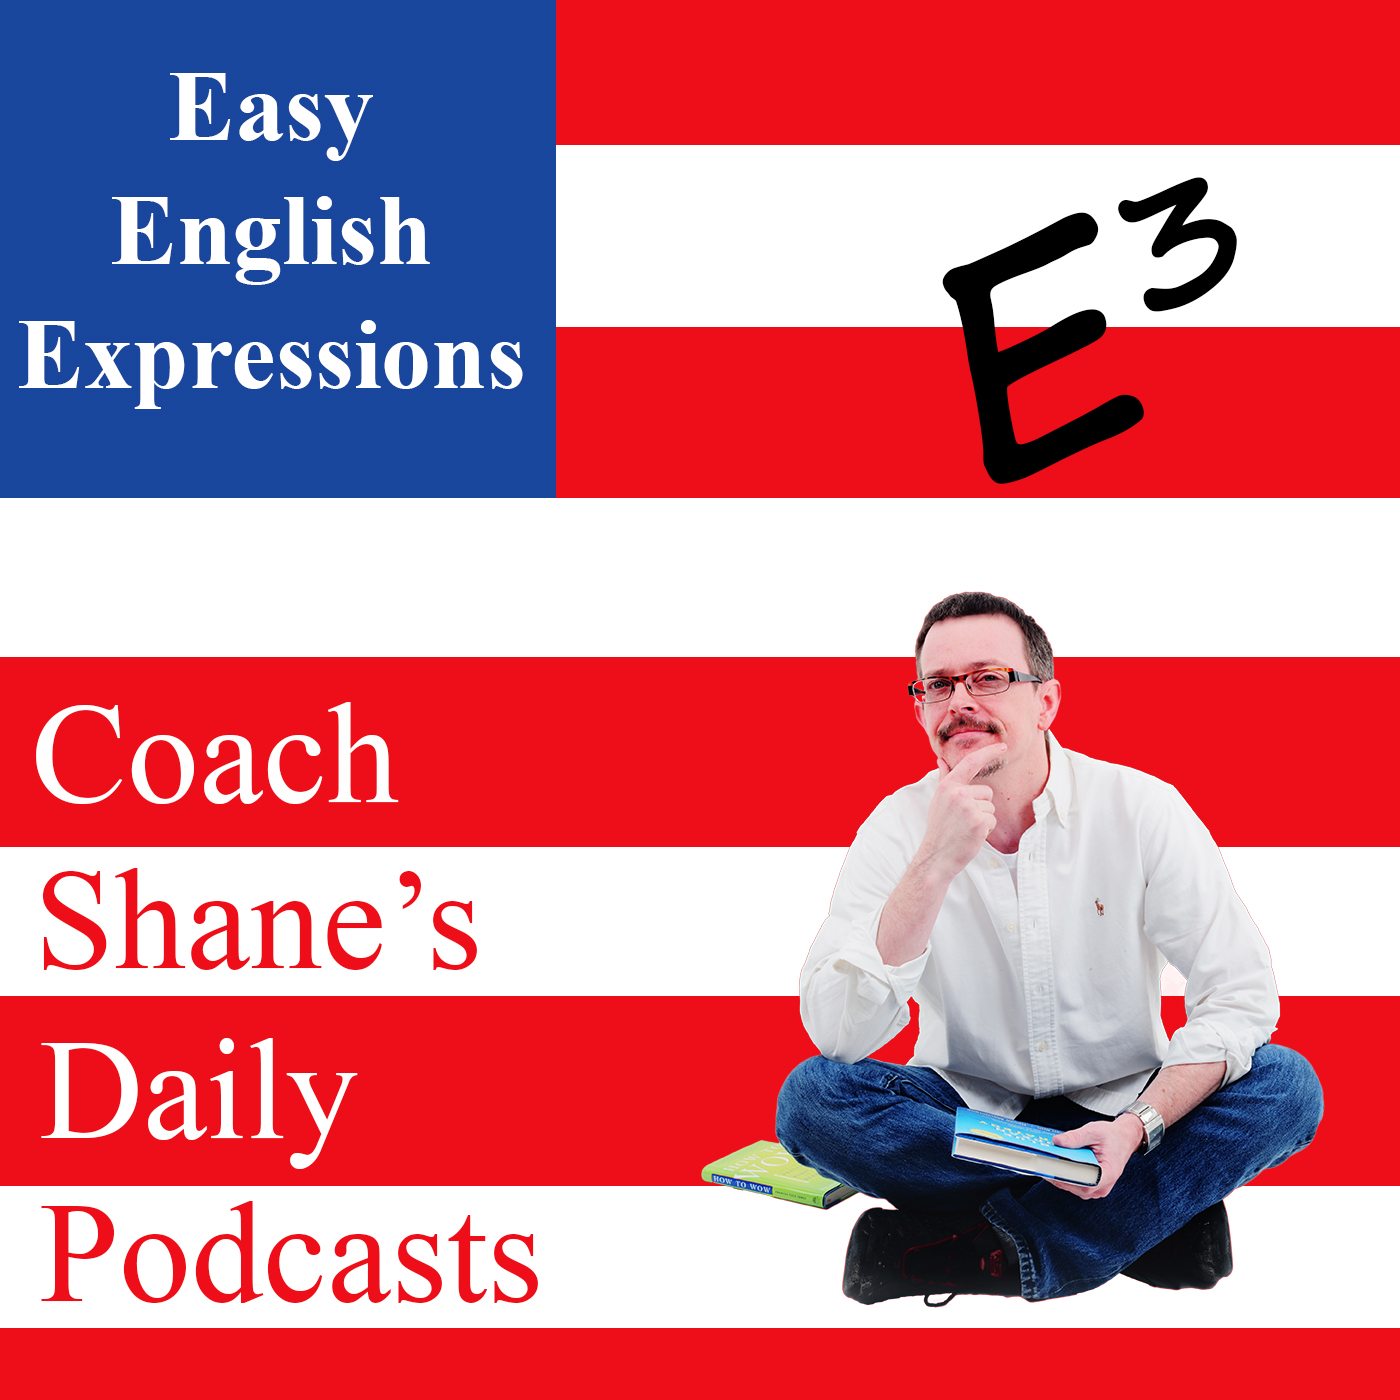 33 Daily Easy English Expression PODCAST—I'm broke!